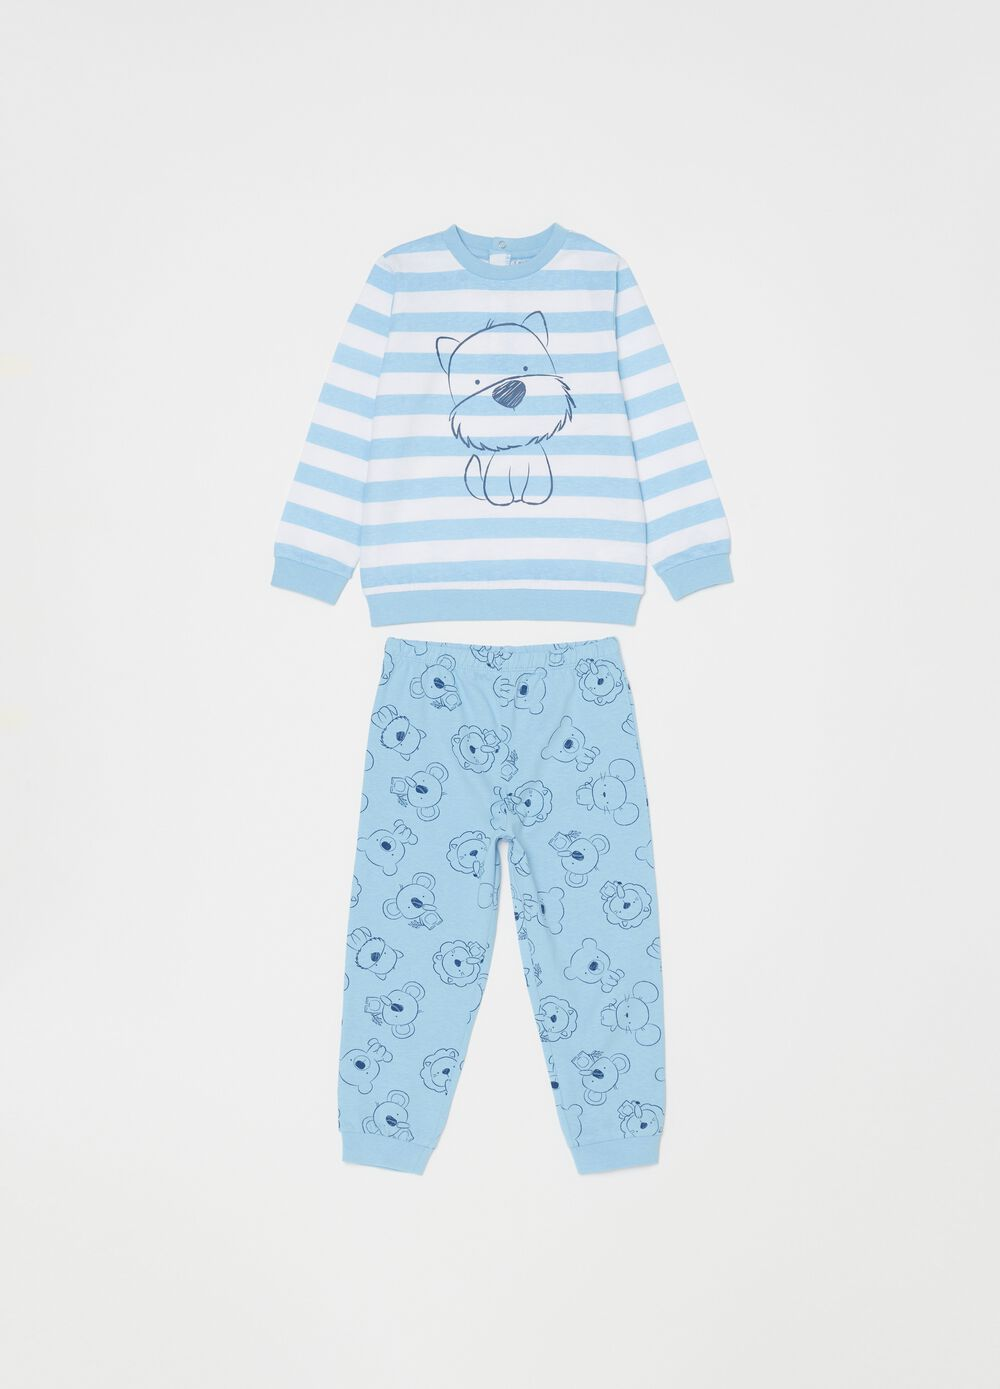 Animal pyjamas in 100% organic cotton